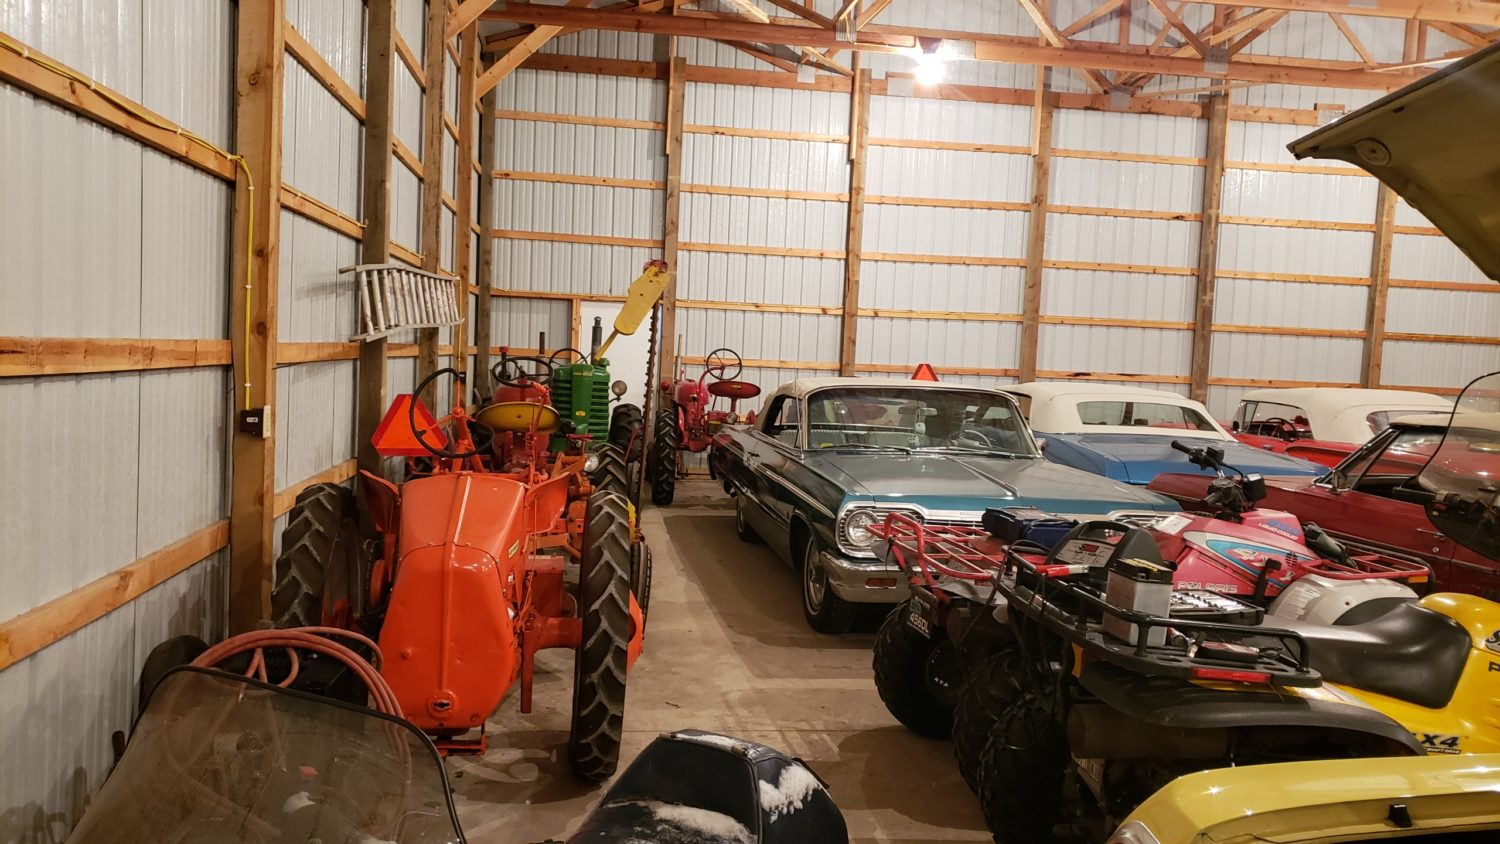 Fabulous Convertibles-Muscle- Antique Tractors & More! The Windels Collection LIVE ONSITE & Online BIdding - image 2